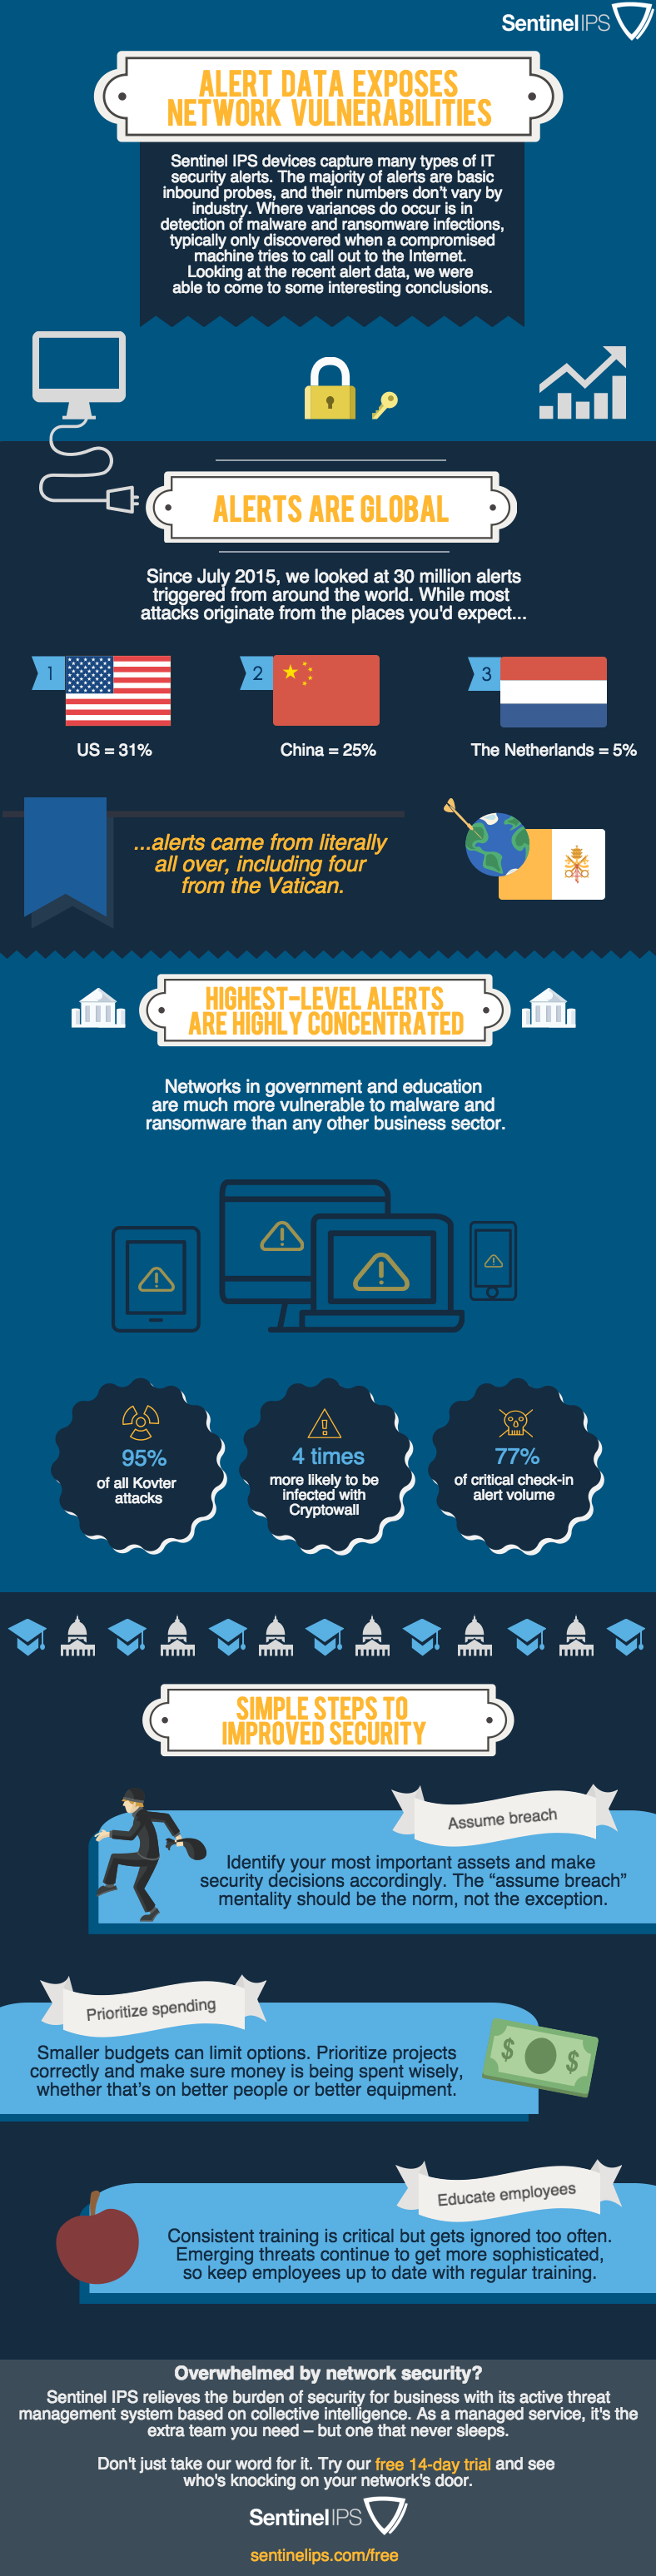 Network Security Infographic - Local and State Government Security Vulnerabilities